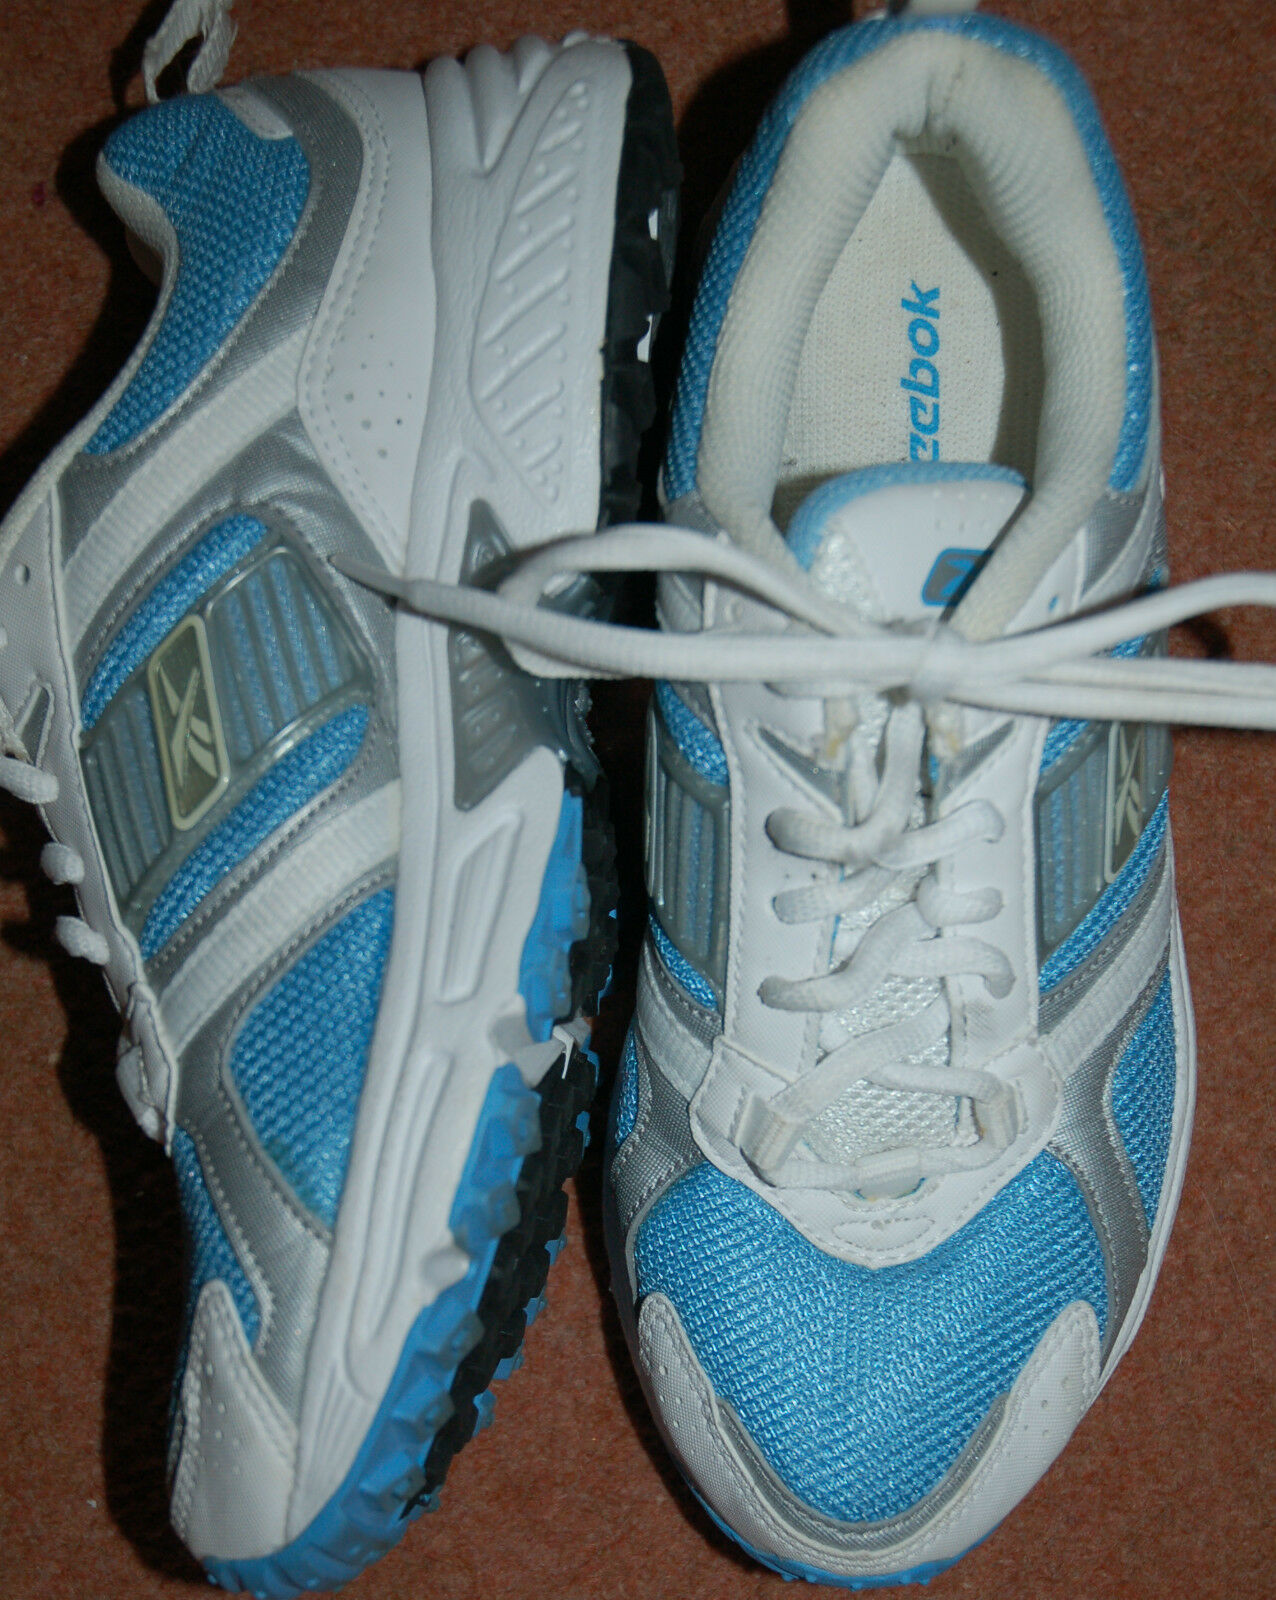 NEW Sz 5 Reebok lace Weiß & Sky Blau lace Reebok up Trainers Silver trim School Sports ba602a